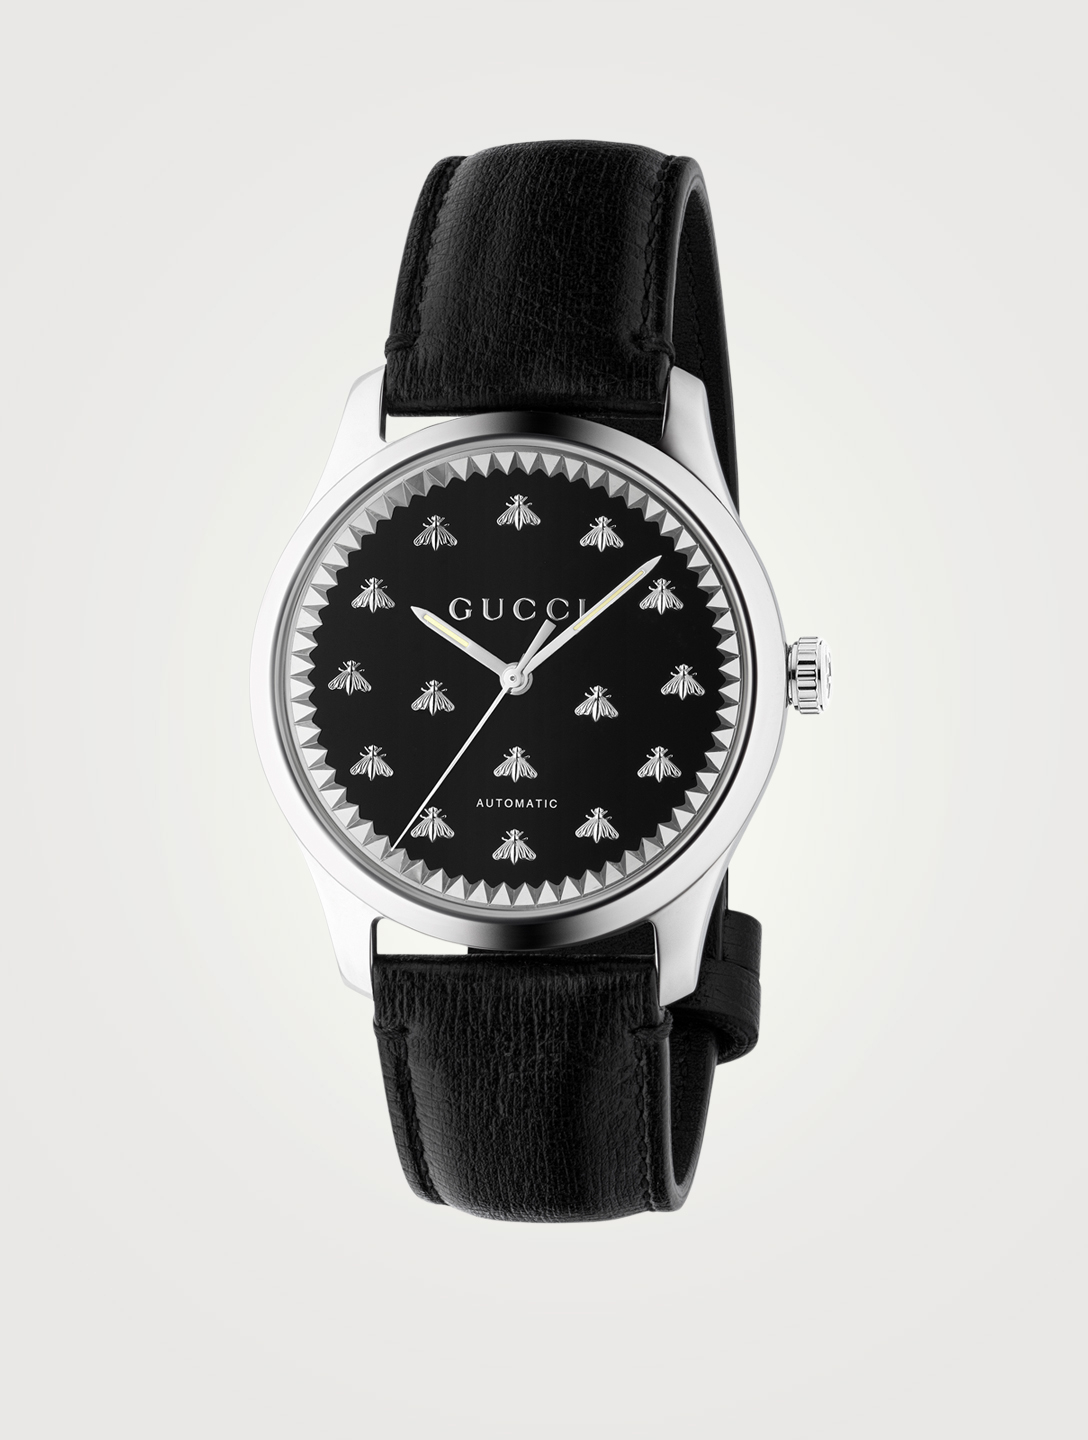 GUCCI G-Timeless Leather Strap Watch Women's Black